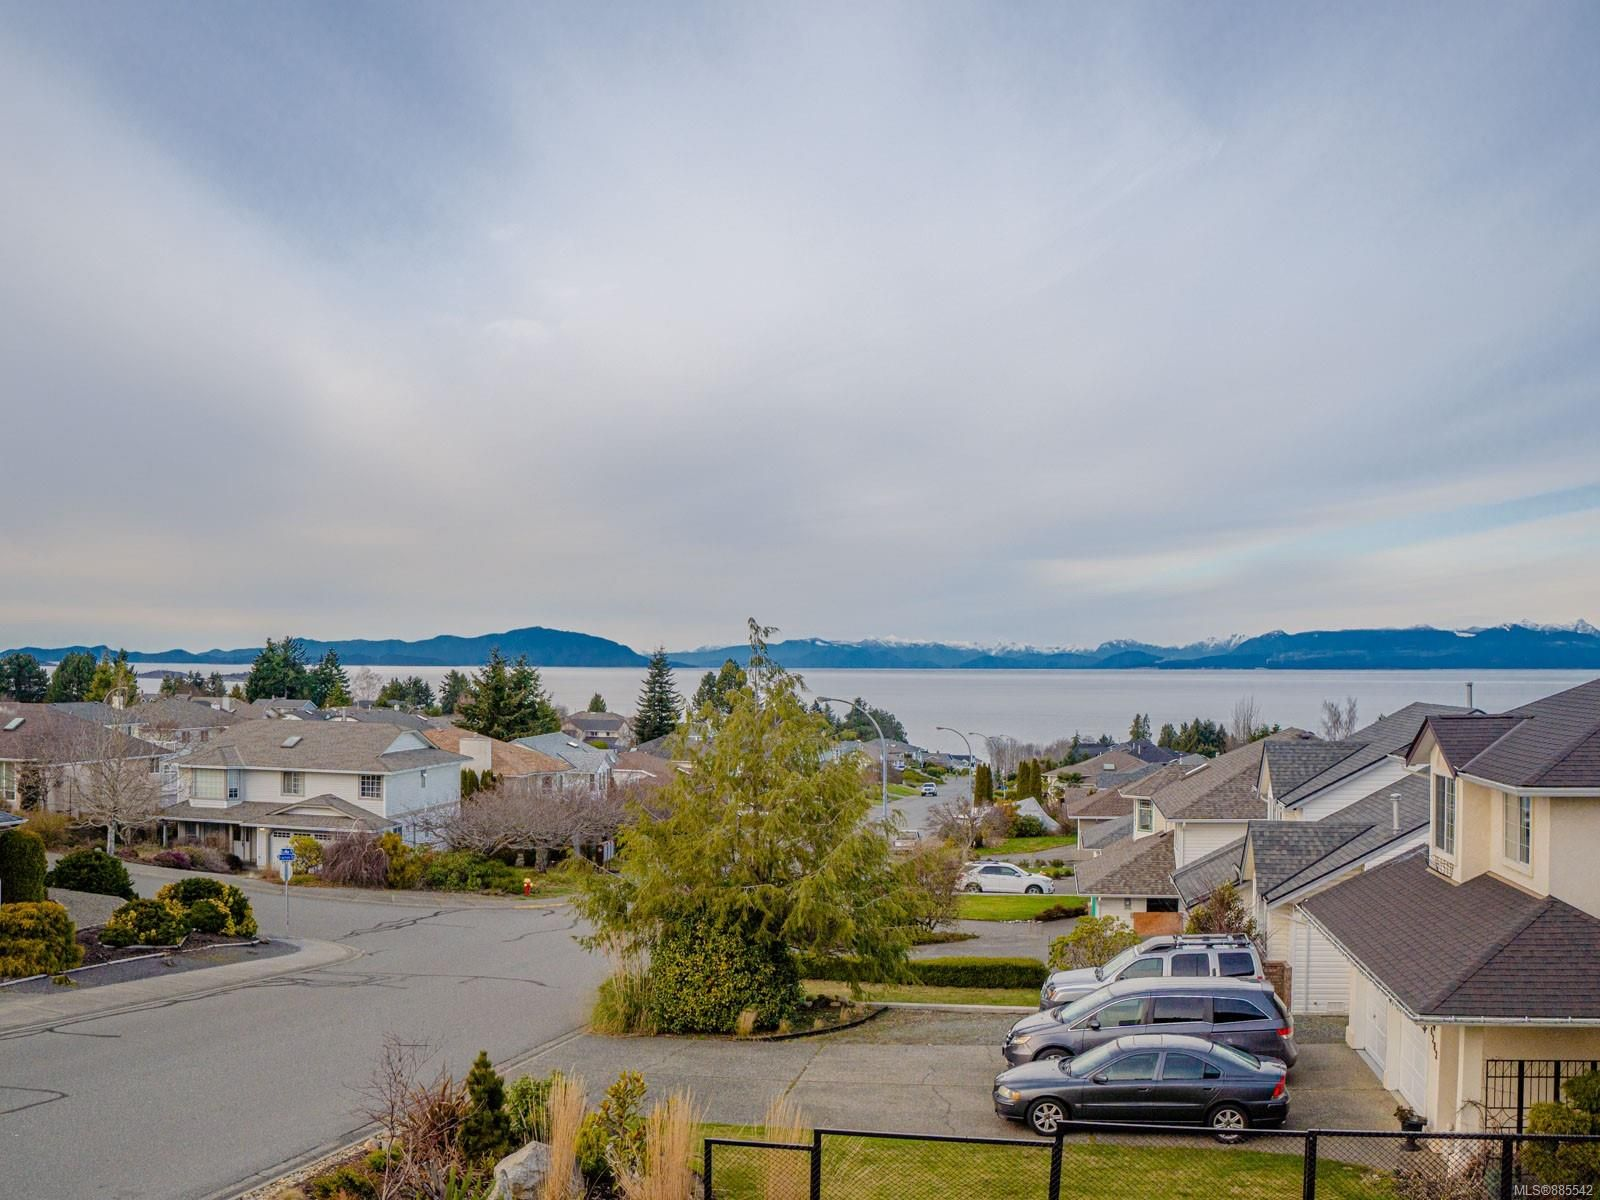 Photo 44: Photos: 6278 Invermere Rd in : Na North Nanaimo House for sale (Nanaimo)  : MLS®# 885542